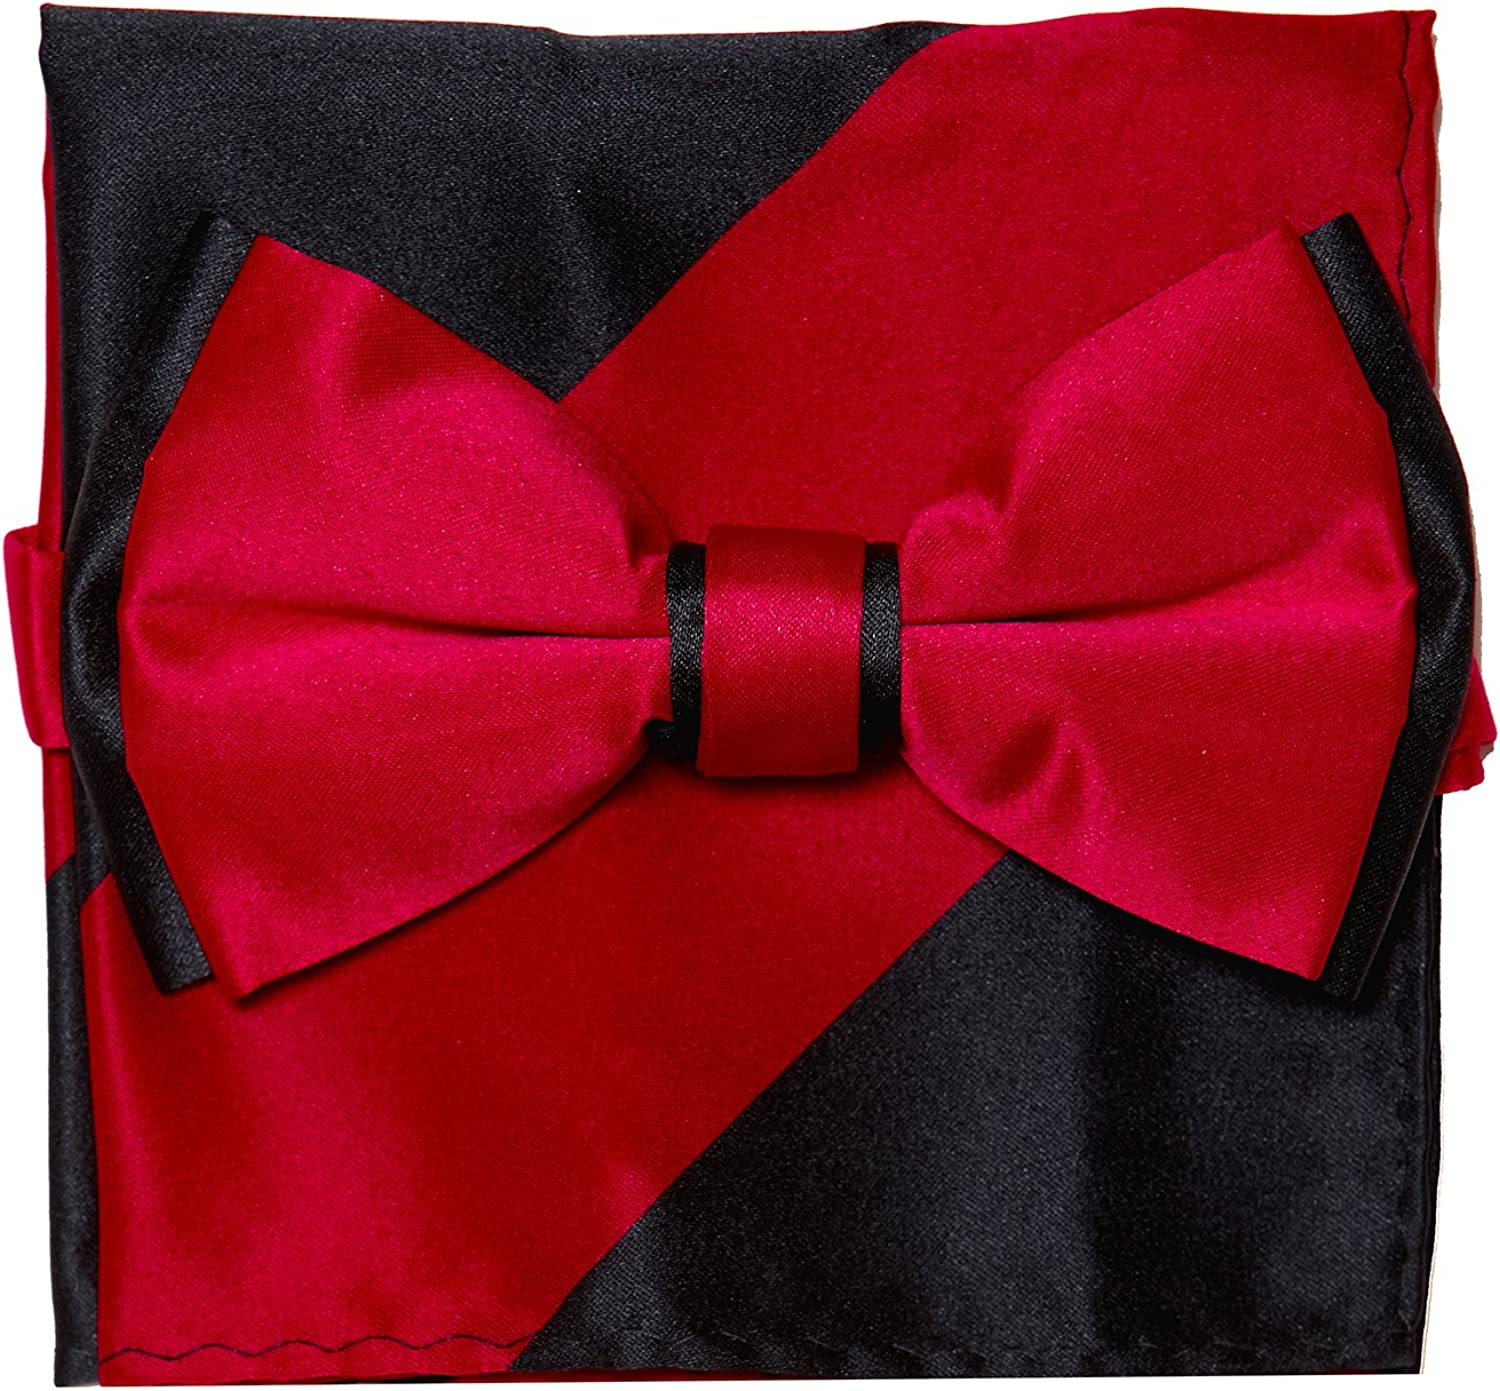 WOXHY New Hot Fashion Mens Self Tie Bow Ties Black Red Solid Color Bowties for Men Classic Jacquard Cravat Accessories Necktie